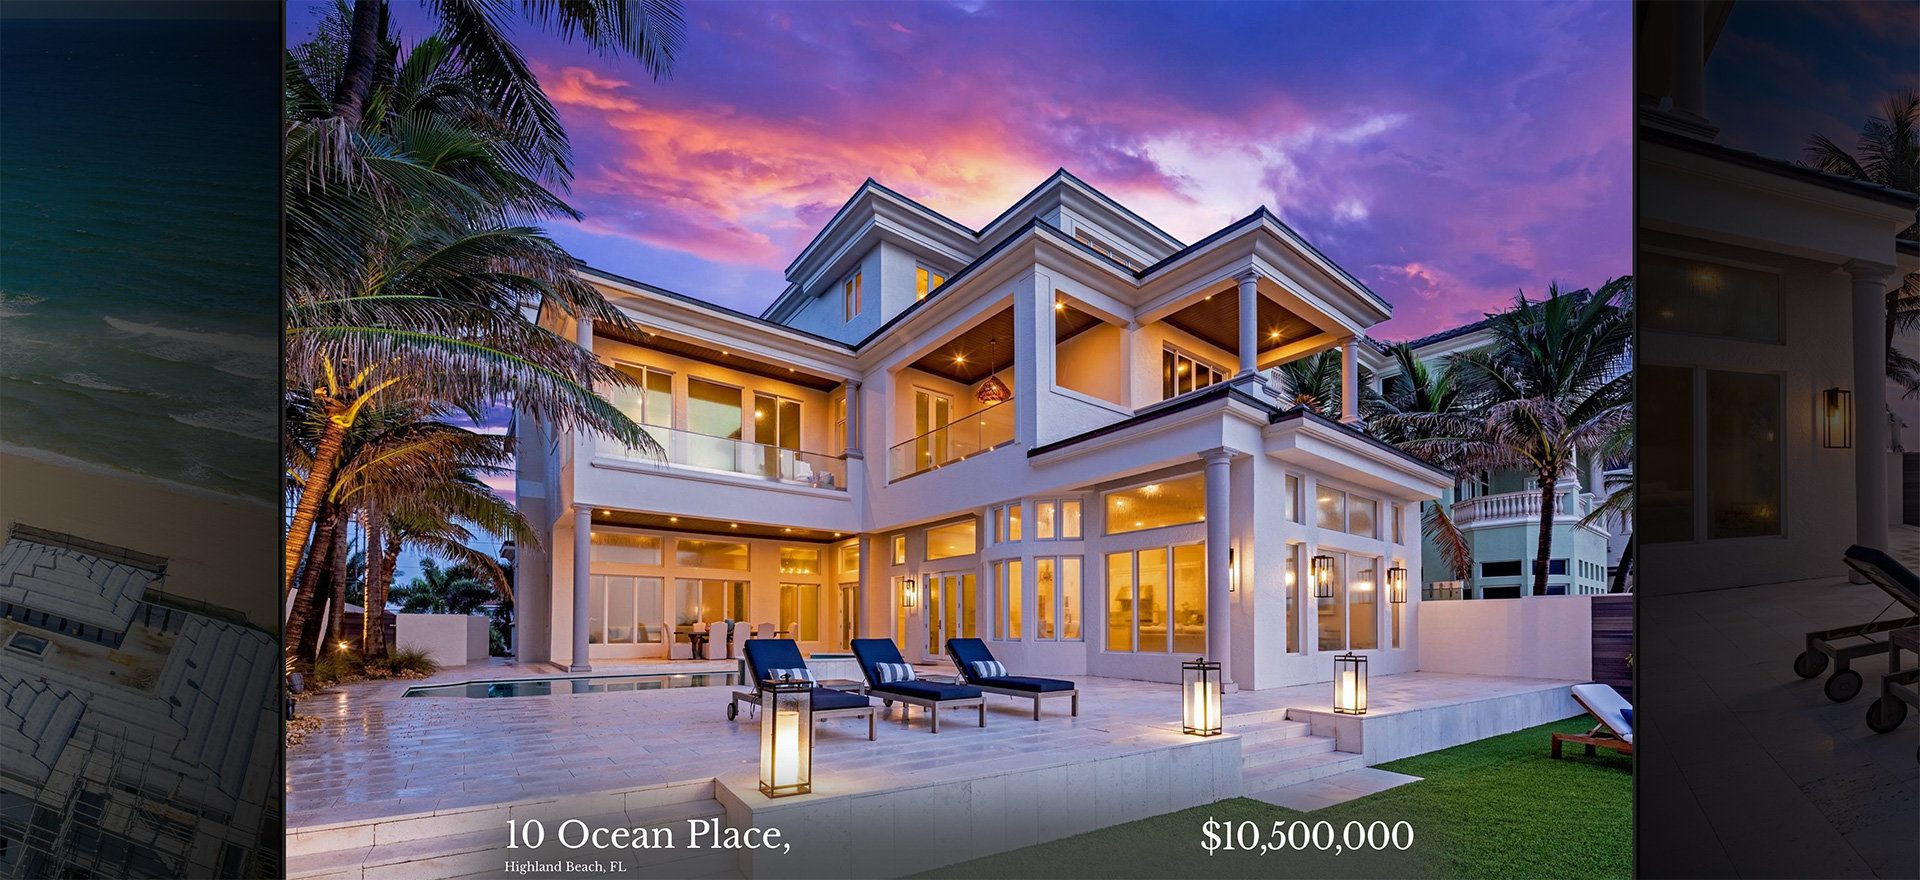 10 Ocean Place, Highland Beach